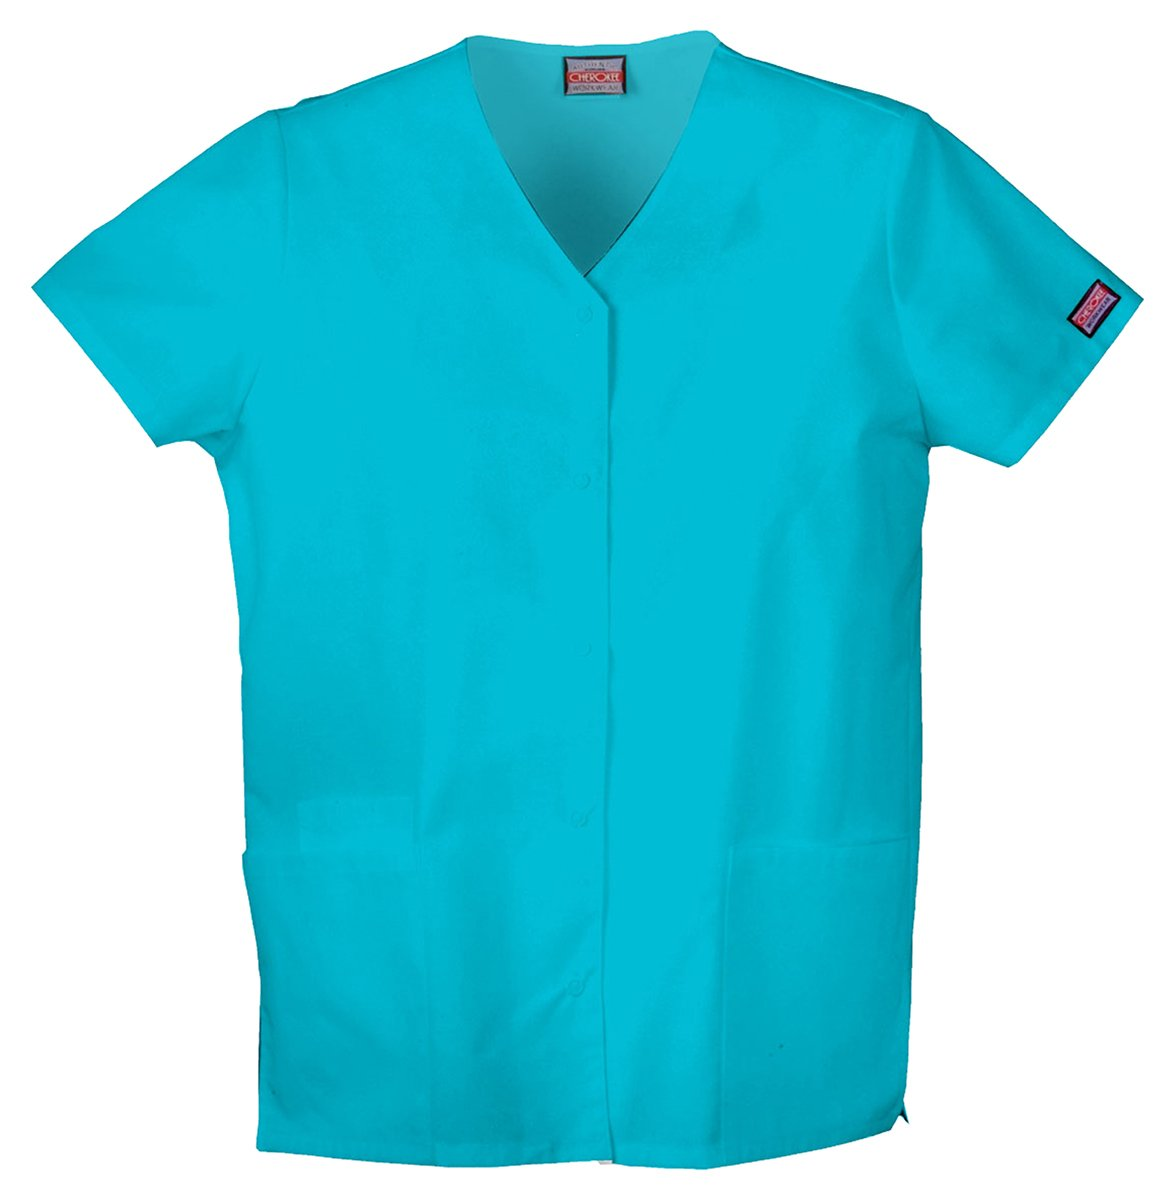 Cherokee Workwear Women's Snap Front V-Neck Shirt_Turquoise_XXXX-Large,4770